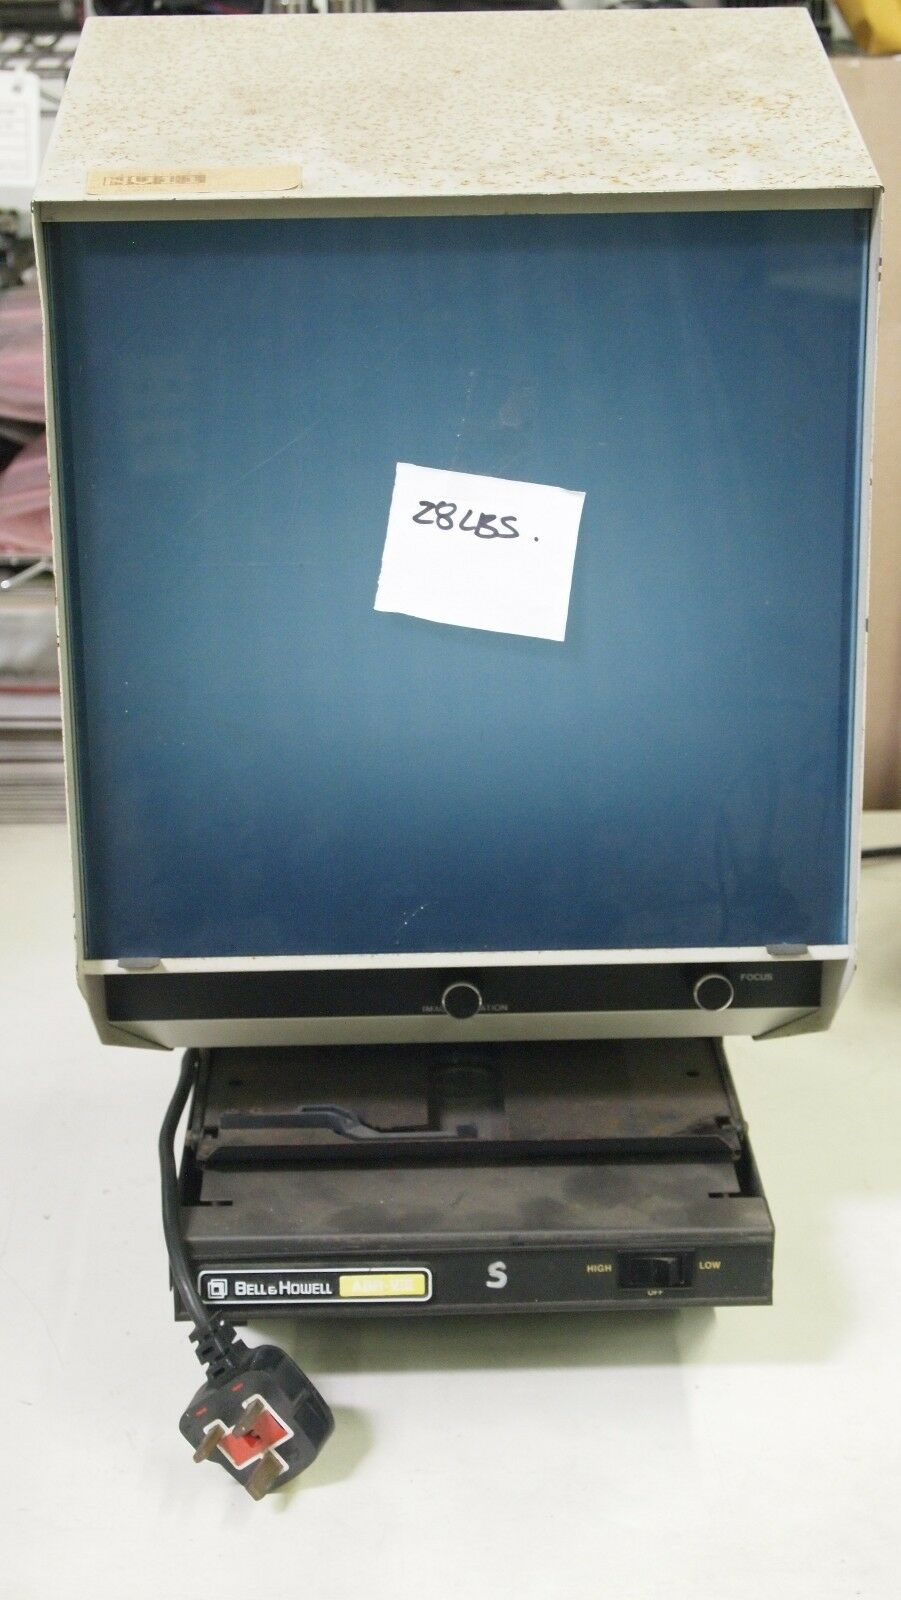 Bell and Howell Microfiche Microfilm Viewer ABR-VIII